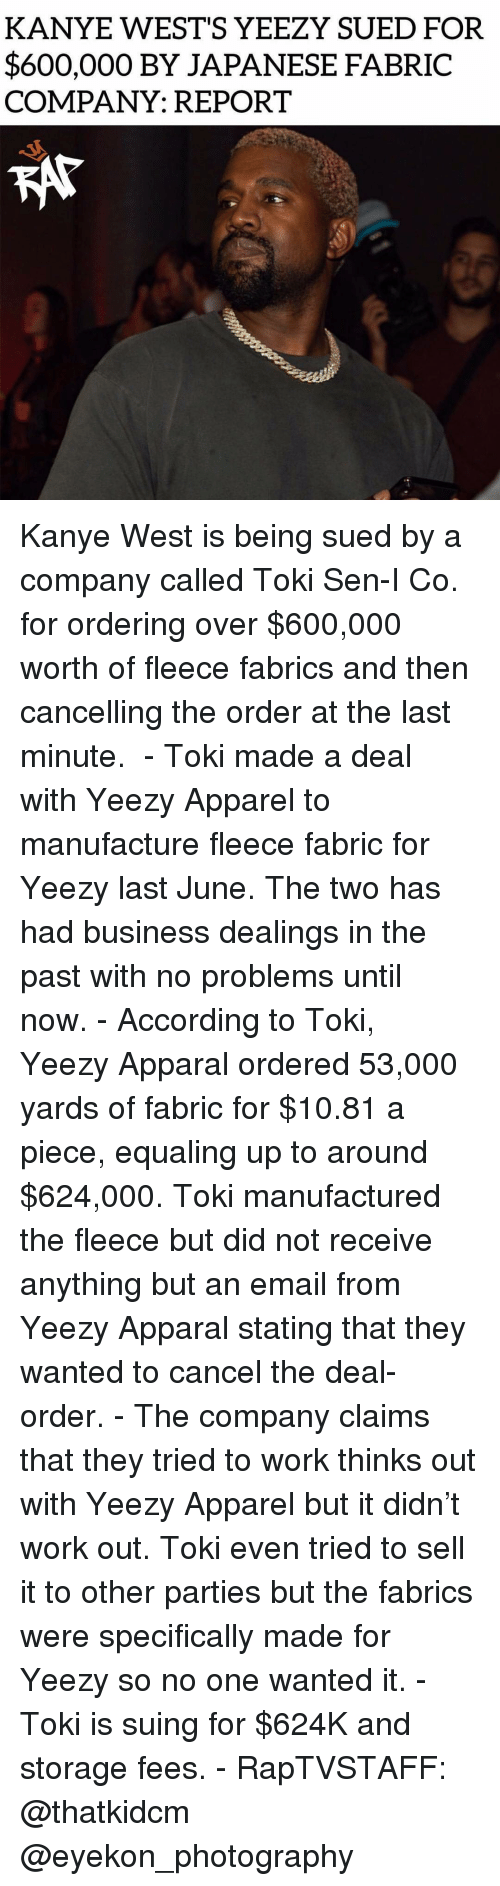 Kanye, Memes, and Yeezy: KANYE WEST'S YEEZY SUED FOR  $600,000 BY JAPANESE FABRIC  COMPANY: REPORT Kanye West is being sued by a company called Toki Sen-I Co. for ordering over $600,000 worth of fleece fabrics and then cancelling the order at the last minute.  - Toki made a deal with Yeezy Apparel to manufacture fleece fabric for Yeezy last June. The two has had business dealings in the past with no problems until now. - According to Toki, Yeezy Apparal ordered 53,000 yards of fabric for $10.81 a piece, equaling up to around $624,000. Toki manufactured the fleece but did not receive anything but an email from Yeezy Apparal stating that they wanted to cancel the deal-order. - The company claims that they tried to work thinks out with Yeezy Apparel but it didn't work out. Toki even tried to sell it to other parties but the fabrics were specifically made for Yeezy so no one wanted it. - Toki is suing for $624K and storage fees. - RapTVSTAFF: @thatkidcm @eyekon_photography